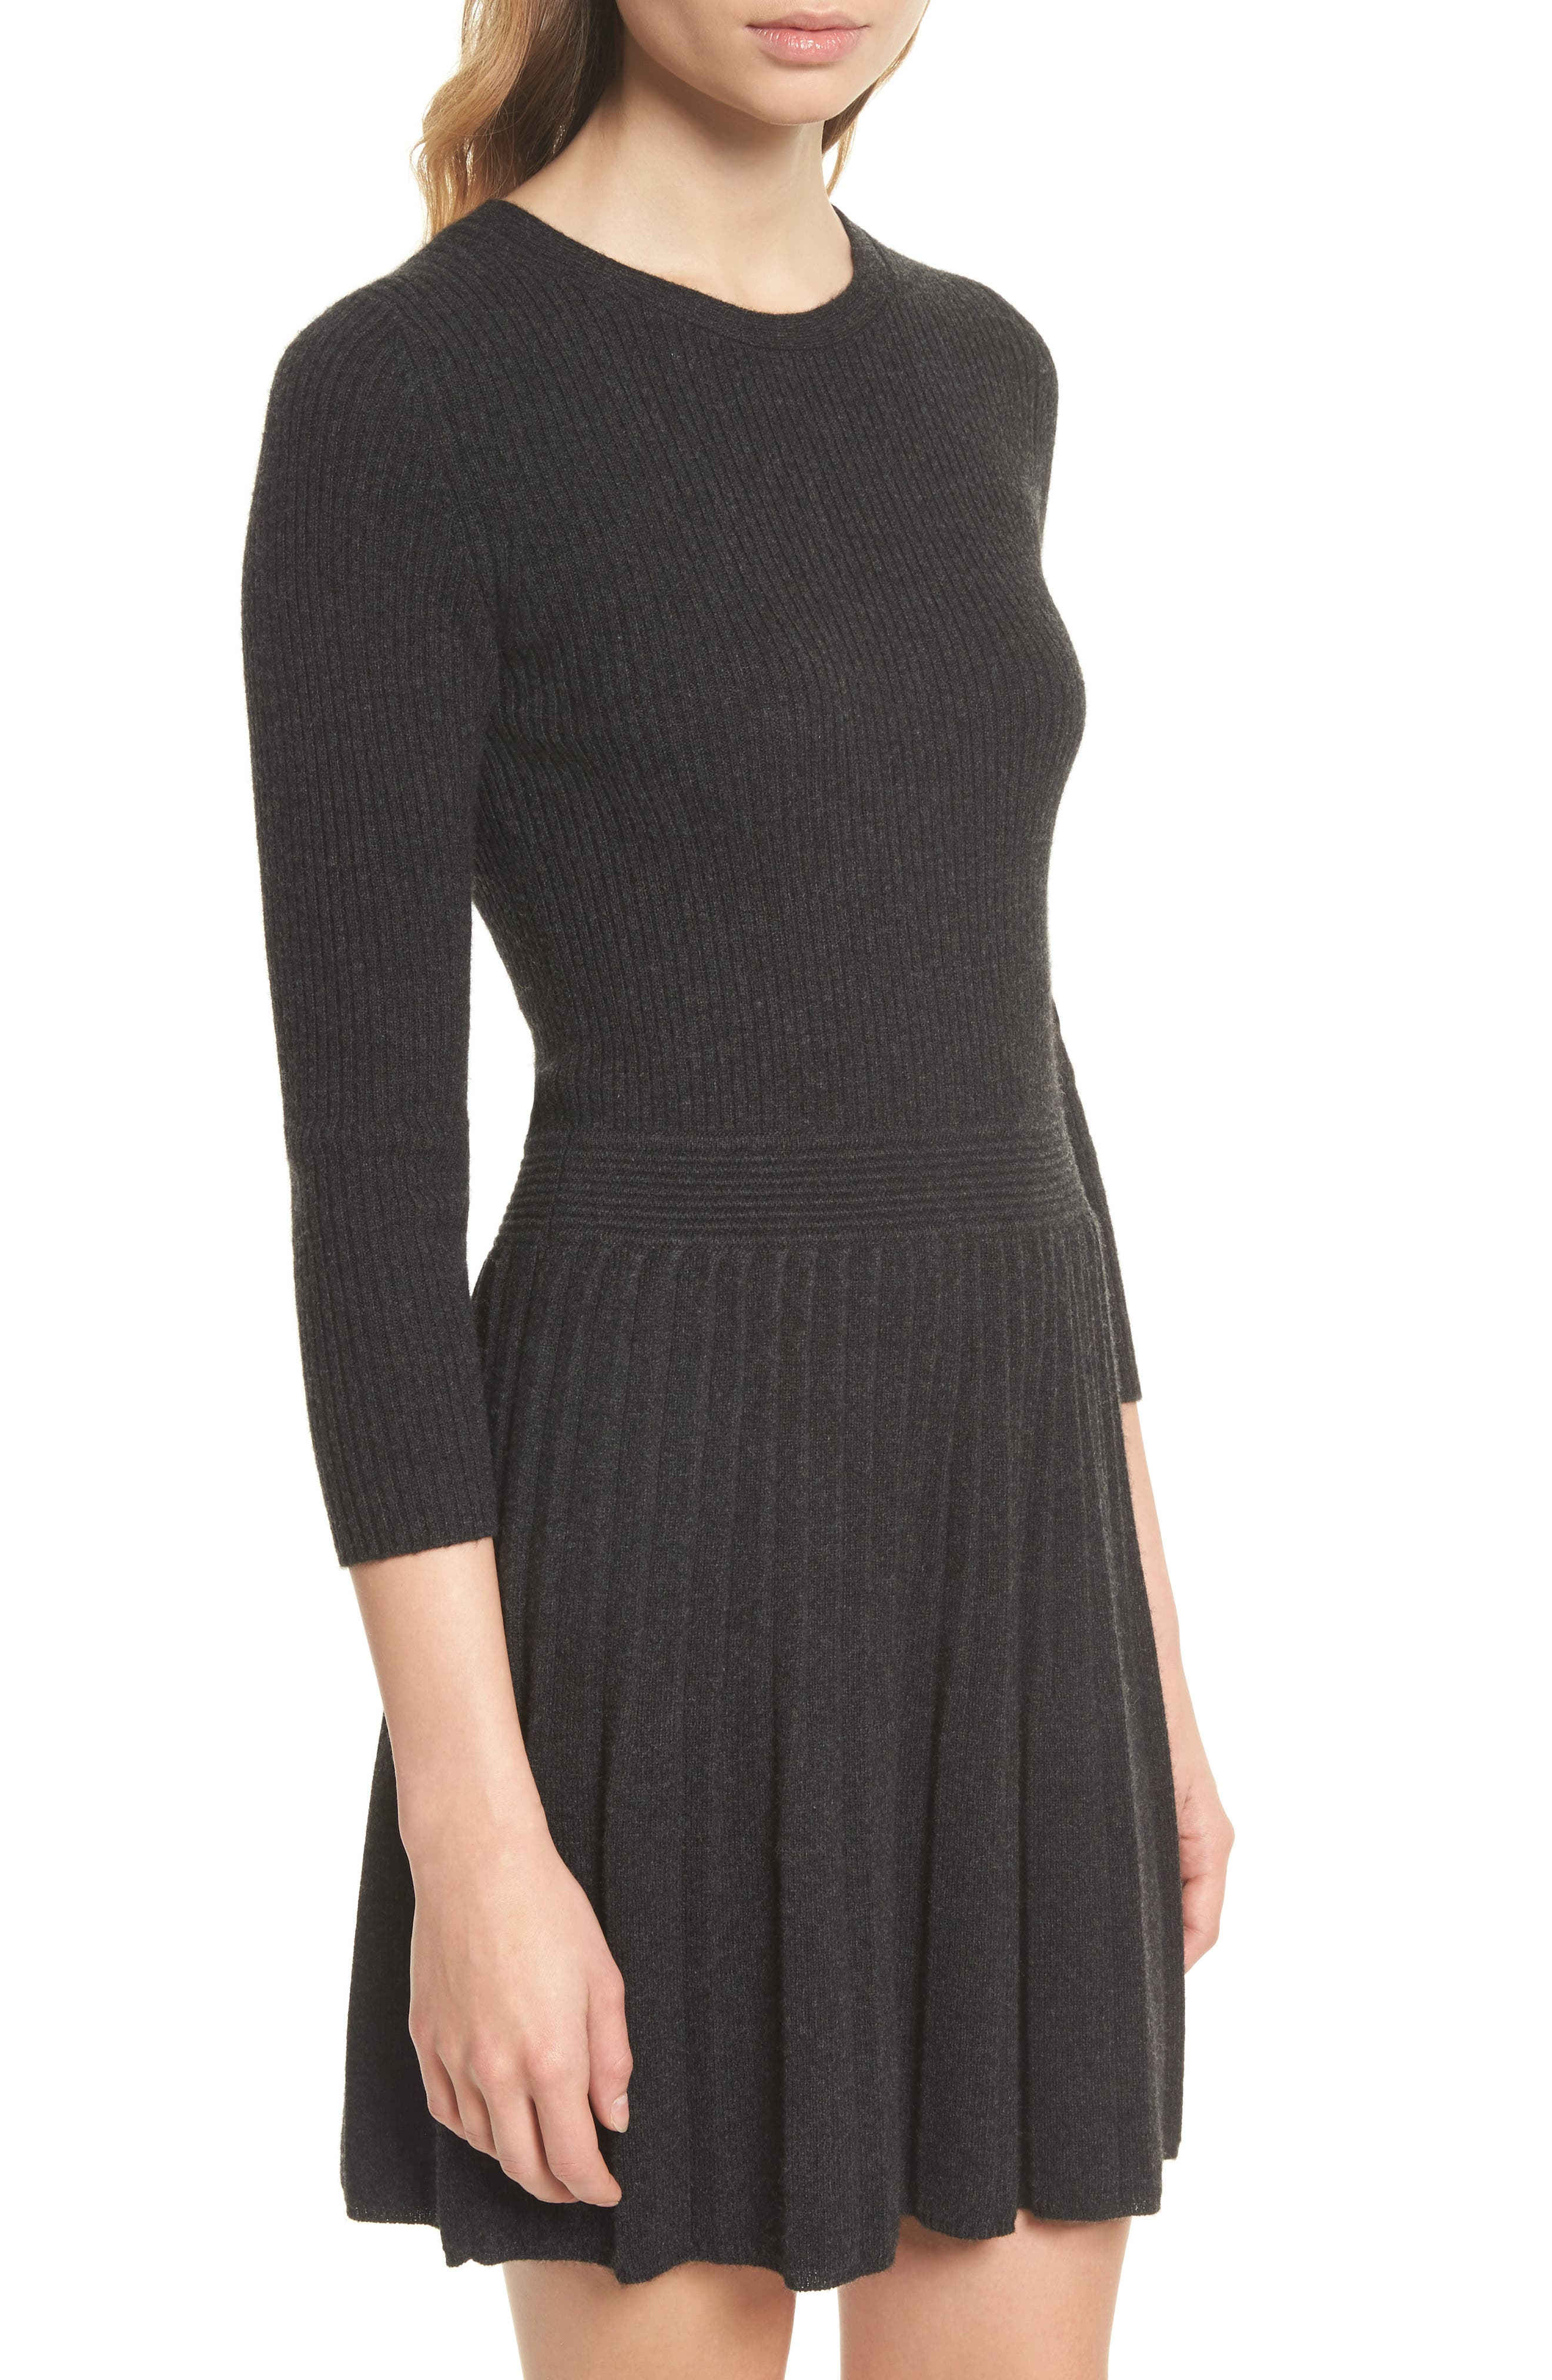 Peronne B Knit Wool & Cashmere Fit & Flare Dress,                             Alternate thumbnail 4, color,                             071